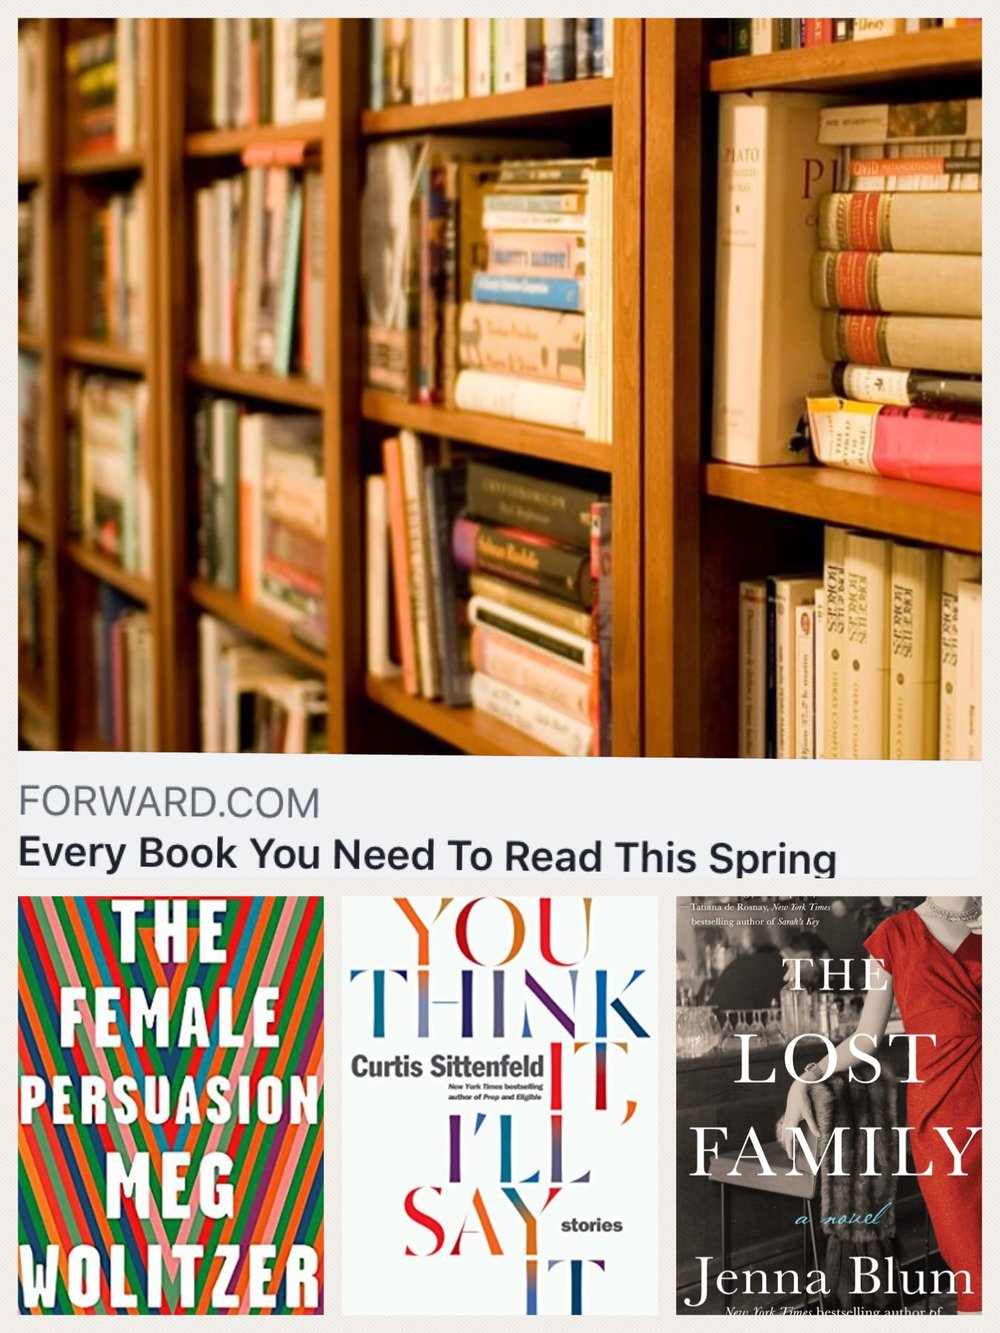 The Forward features The Lost Family on its Spring 2018 Must-Read List! - March 2018: We are absolutely kvelling that The Forward recommends The Lost Family as a must-read this spring. To peruse the whole excellent list, please click here.